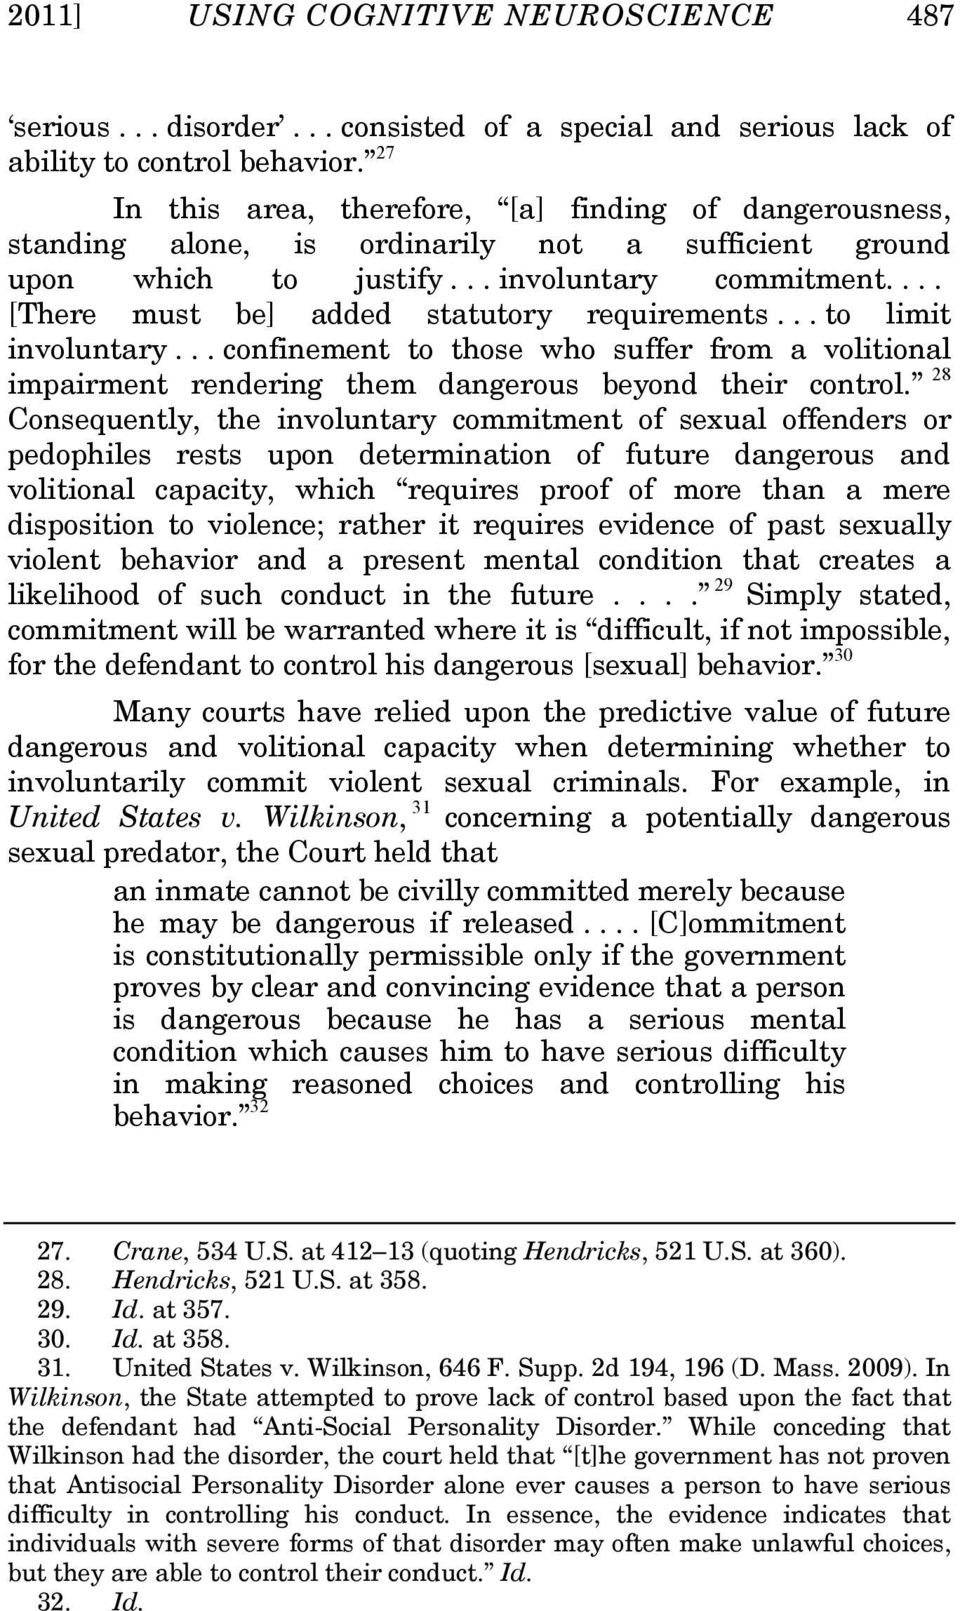 ... [There must be] added statutory requirements... to limit involuntary... confinement to those who suffer from a volitional impairment rendering them dangerous beyond their control.